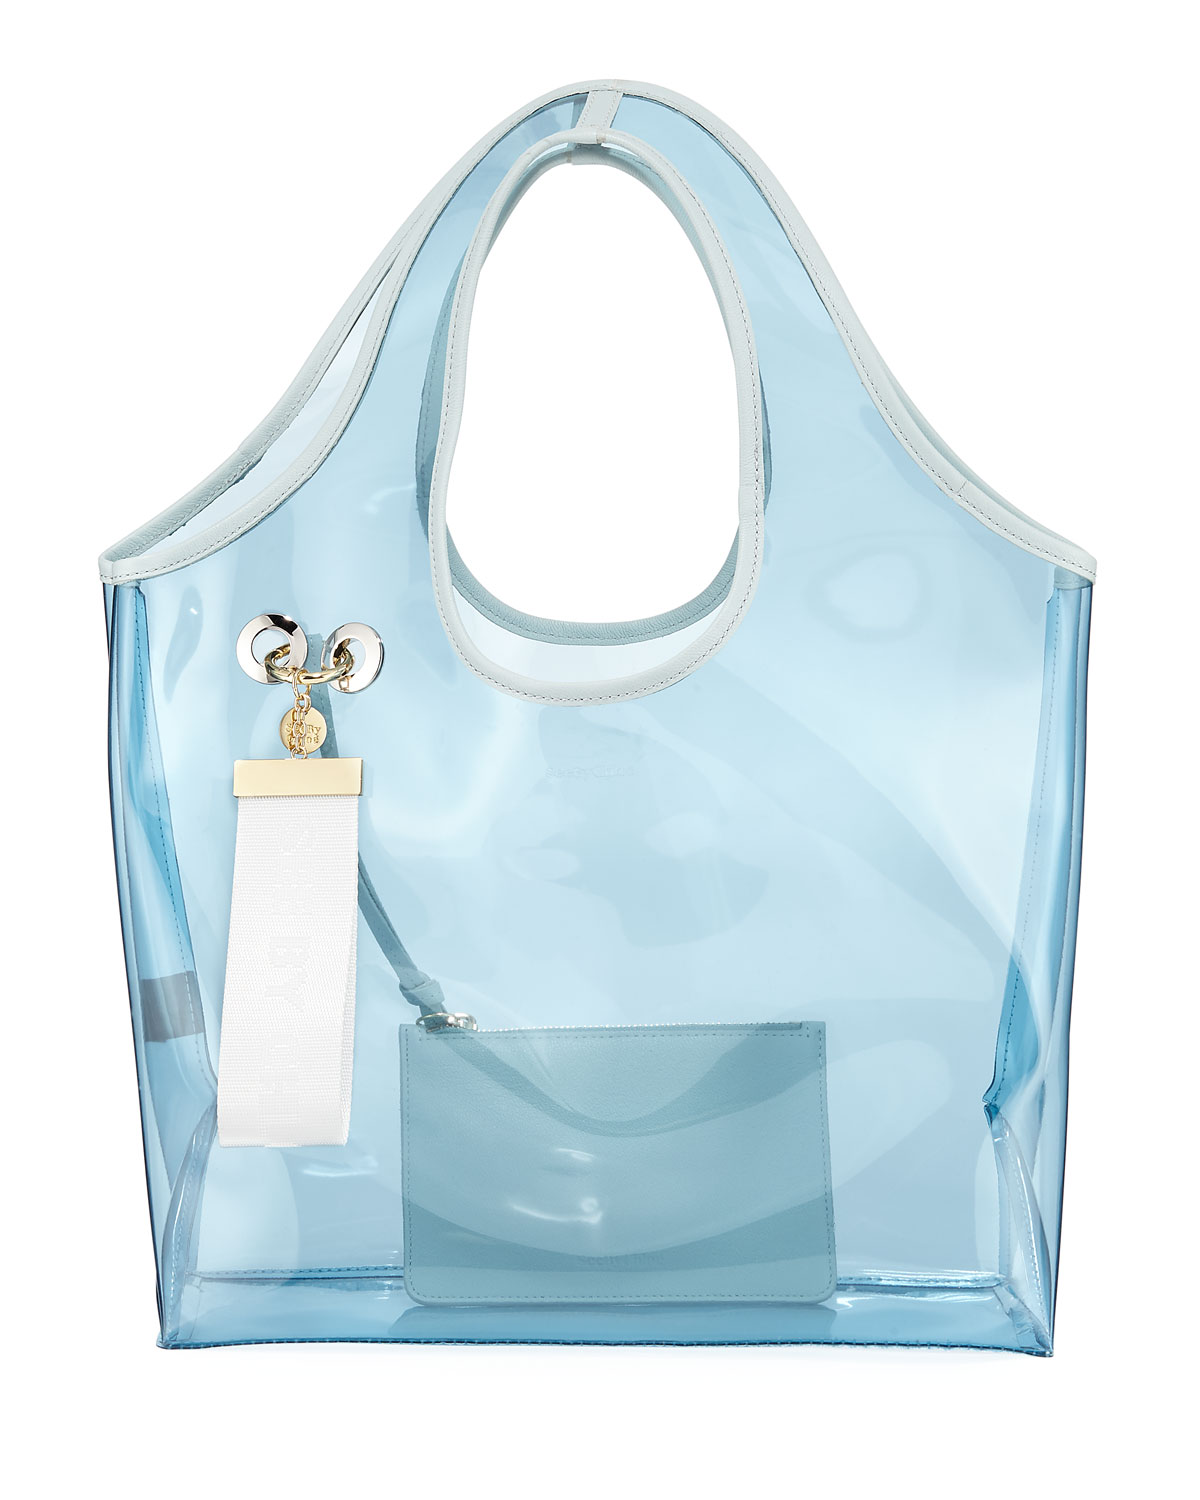 4b71bdf8c52 See By ChloÉ Jay Transparent Tote Bag, Light Blue | ModeSens